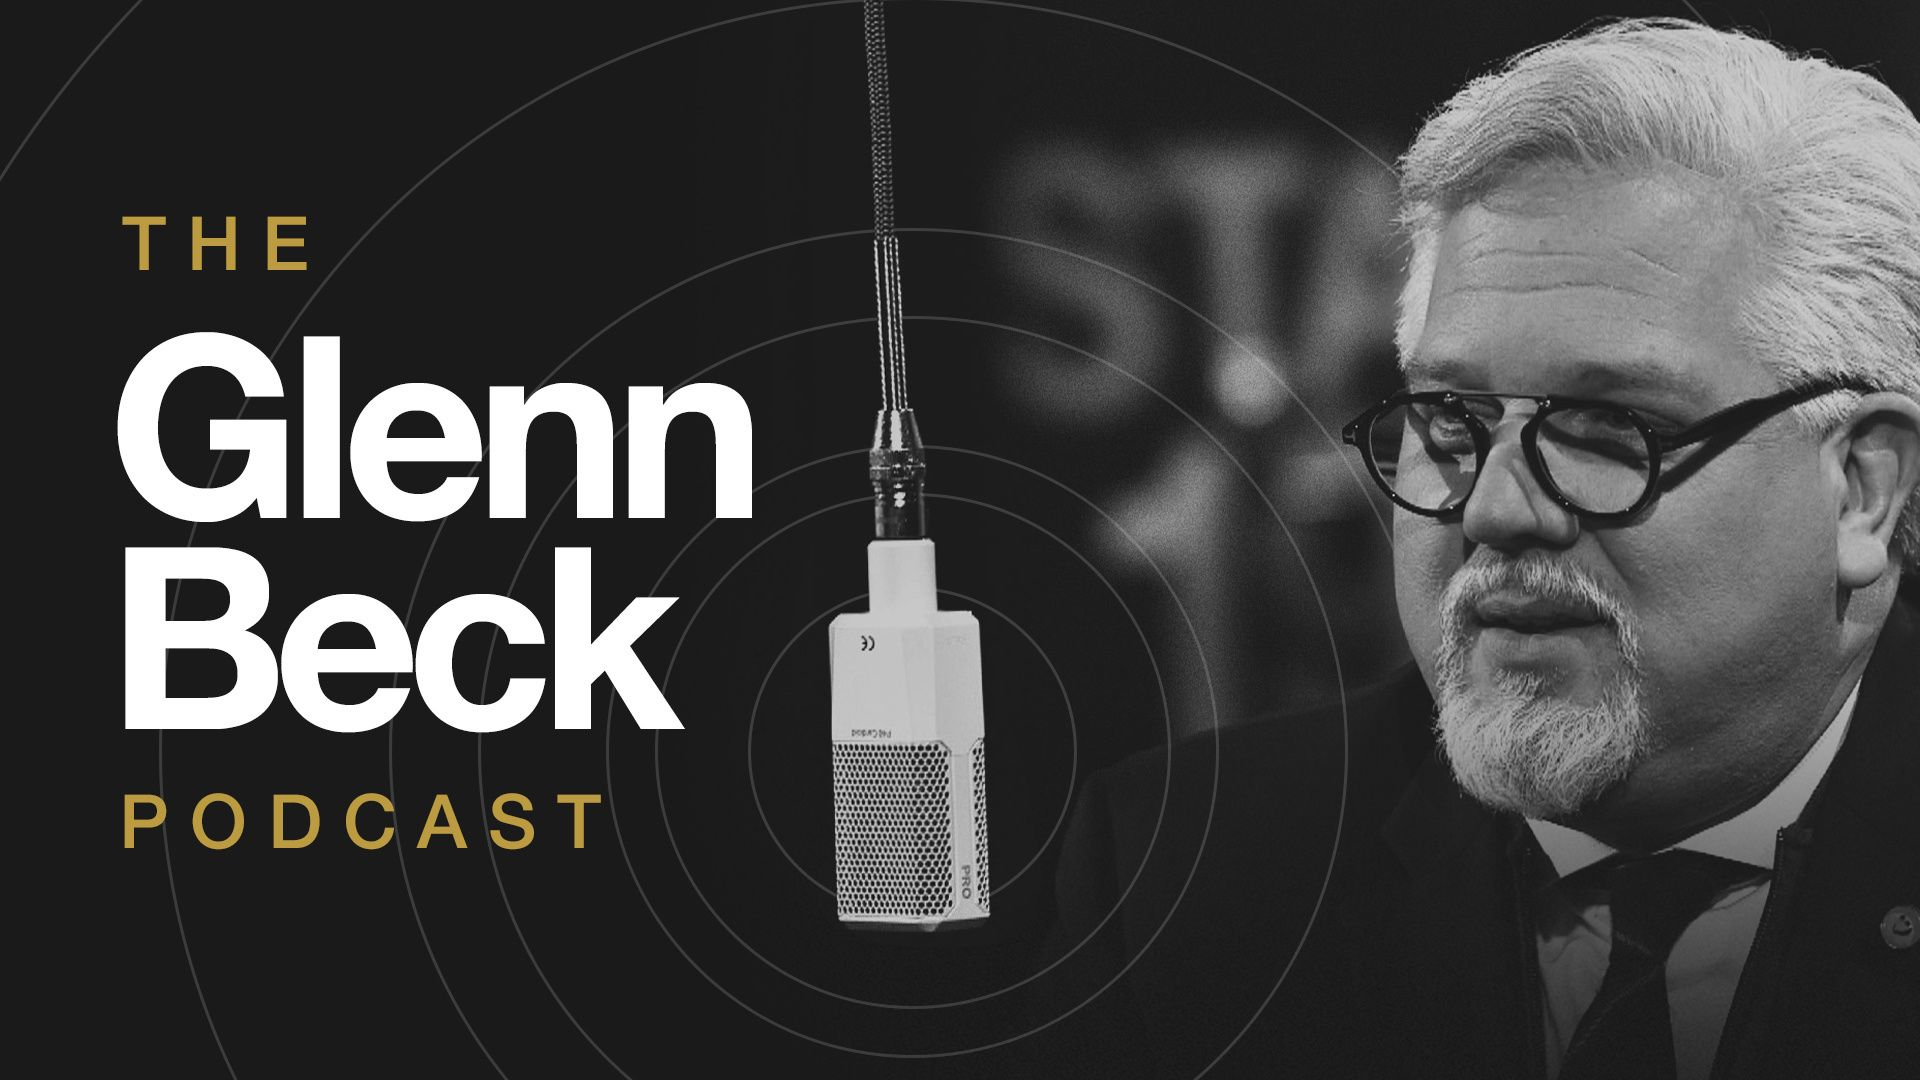 The Glenn Beck Podcast